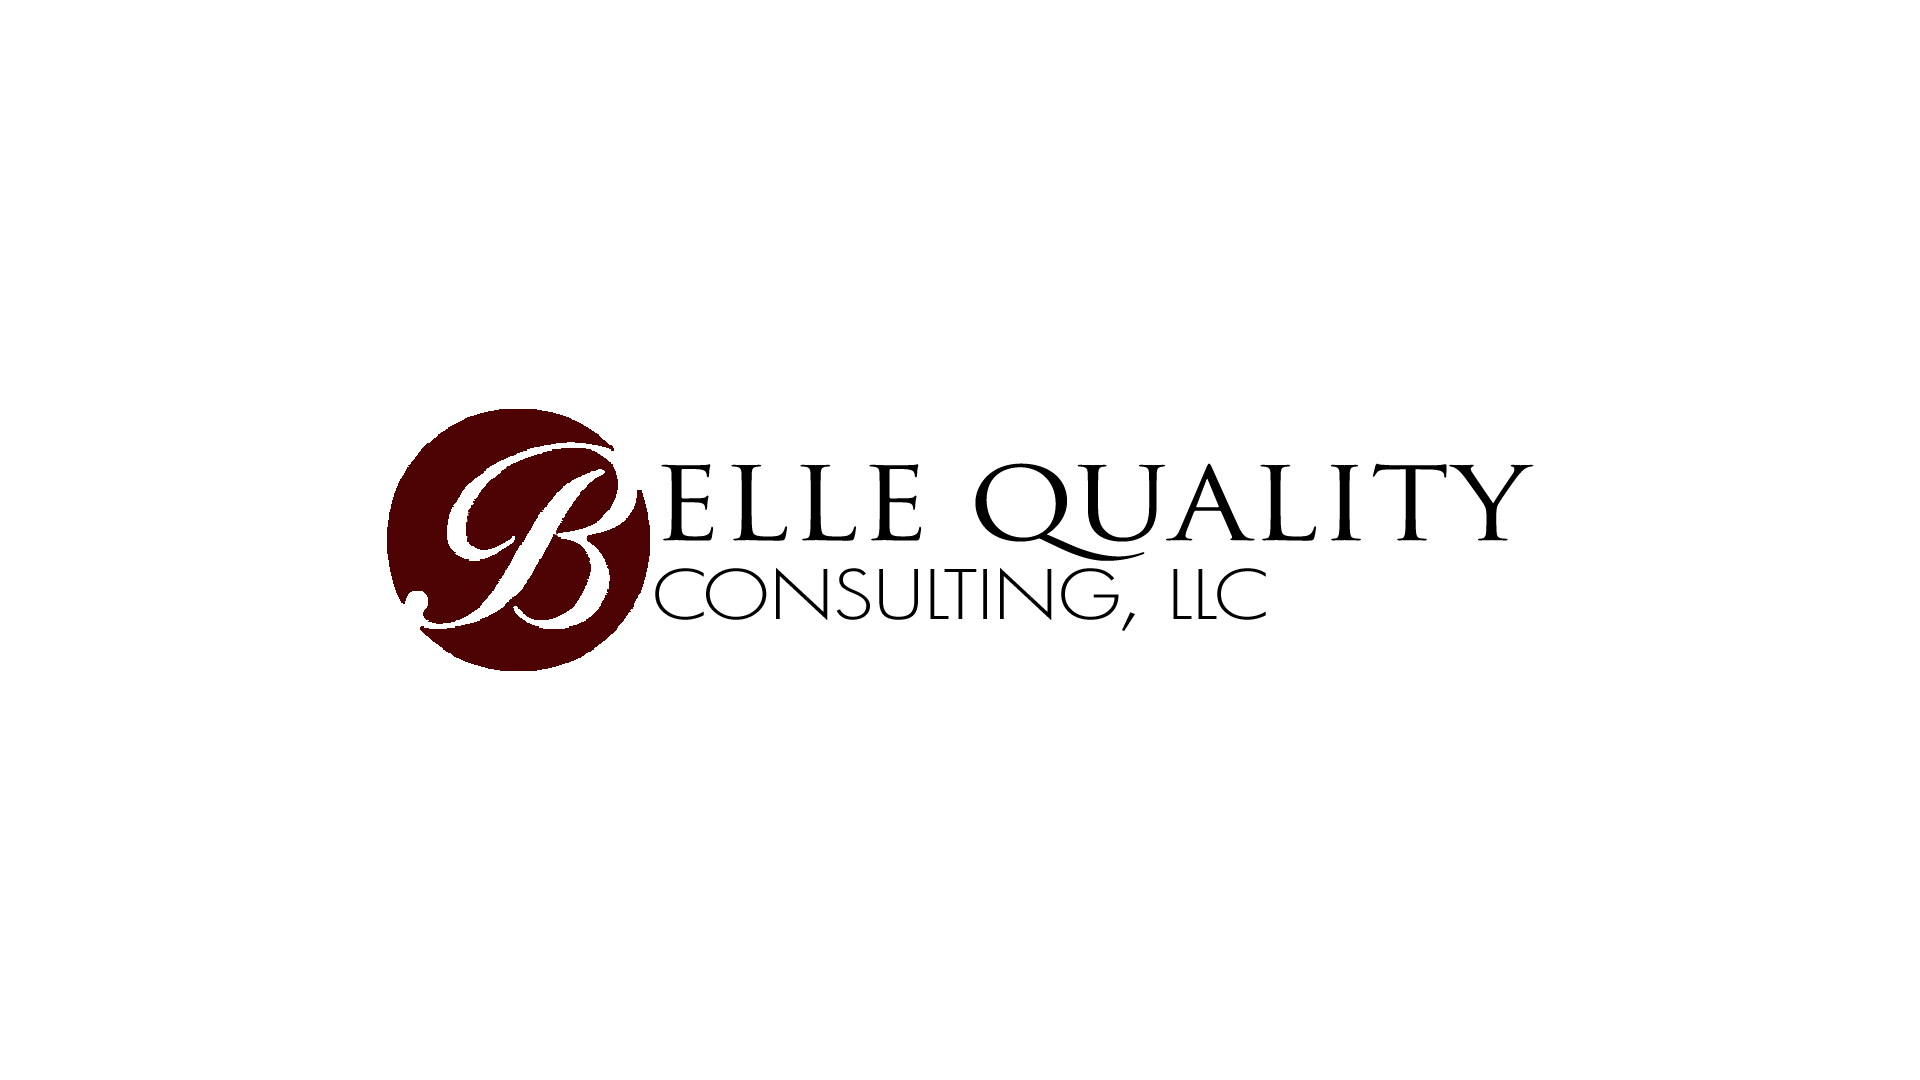 Belle Quality Consulting